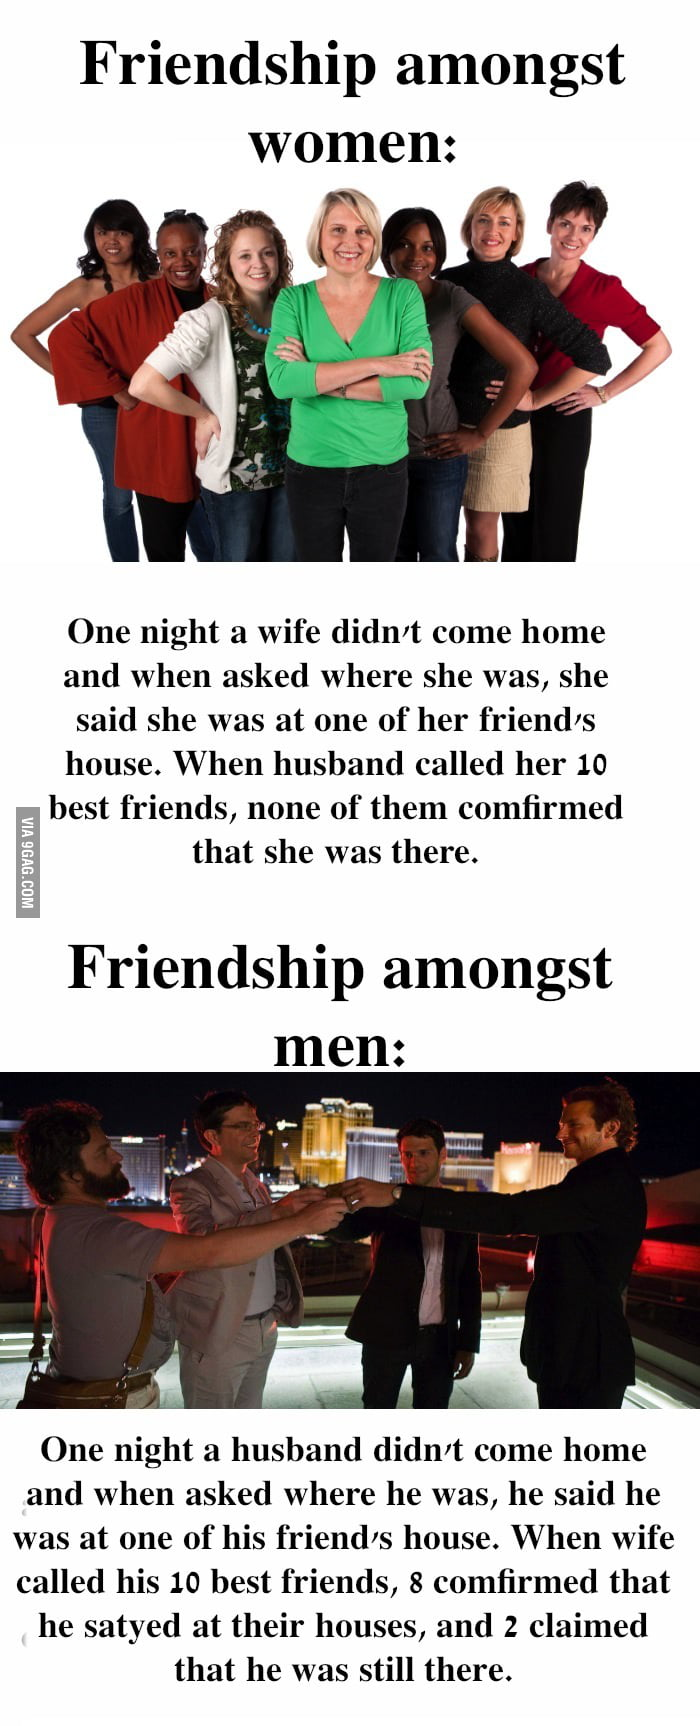 That's called bro code. Where is a sis code? No such thing.